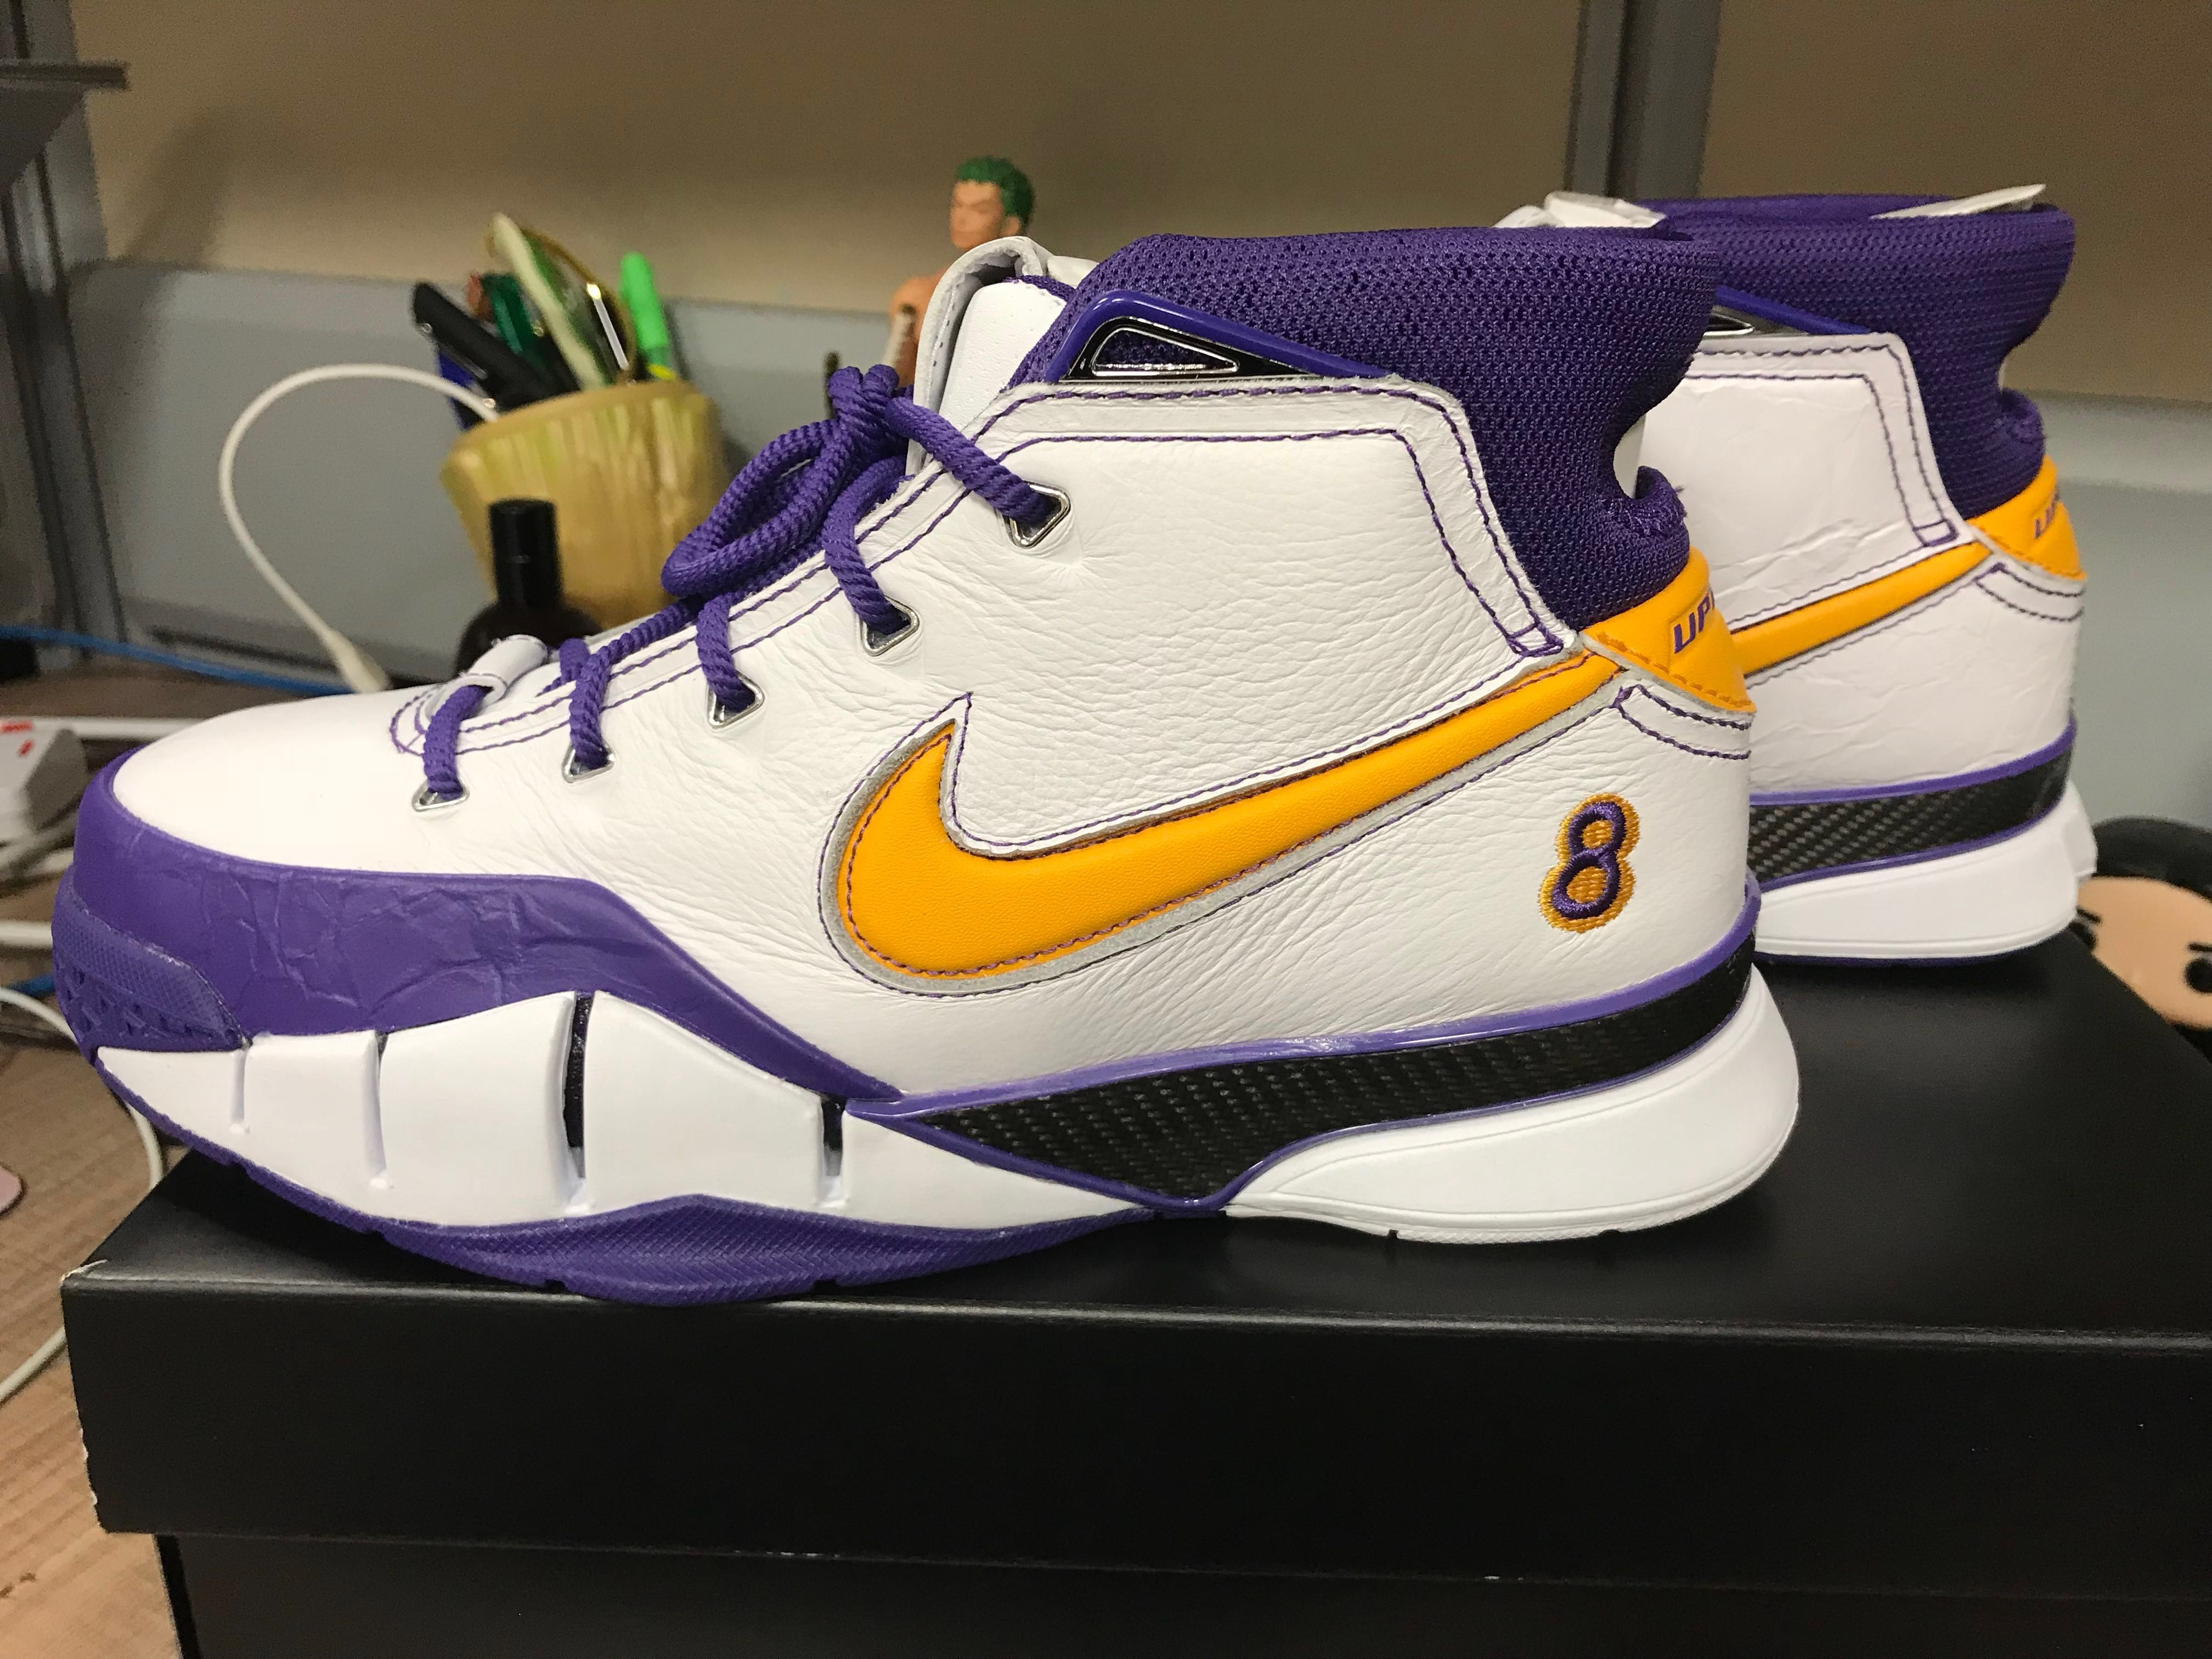 b6153198f668 For Trade or Sale Kobe Protro Nike Zoom Air Size 7US